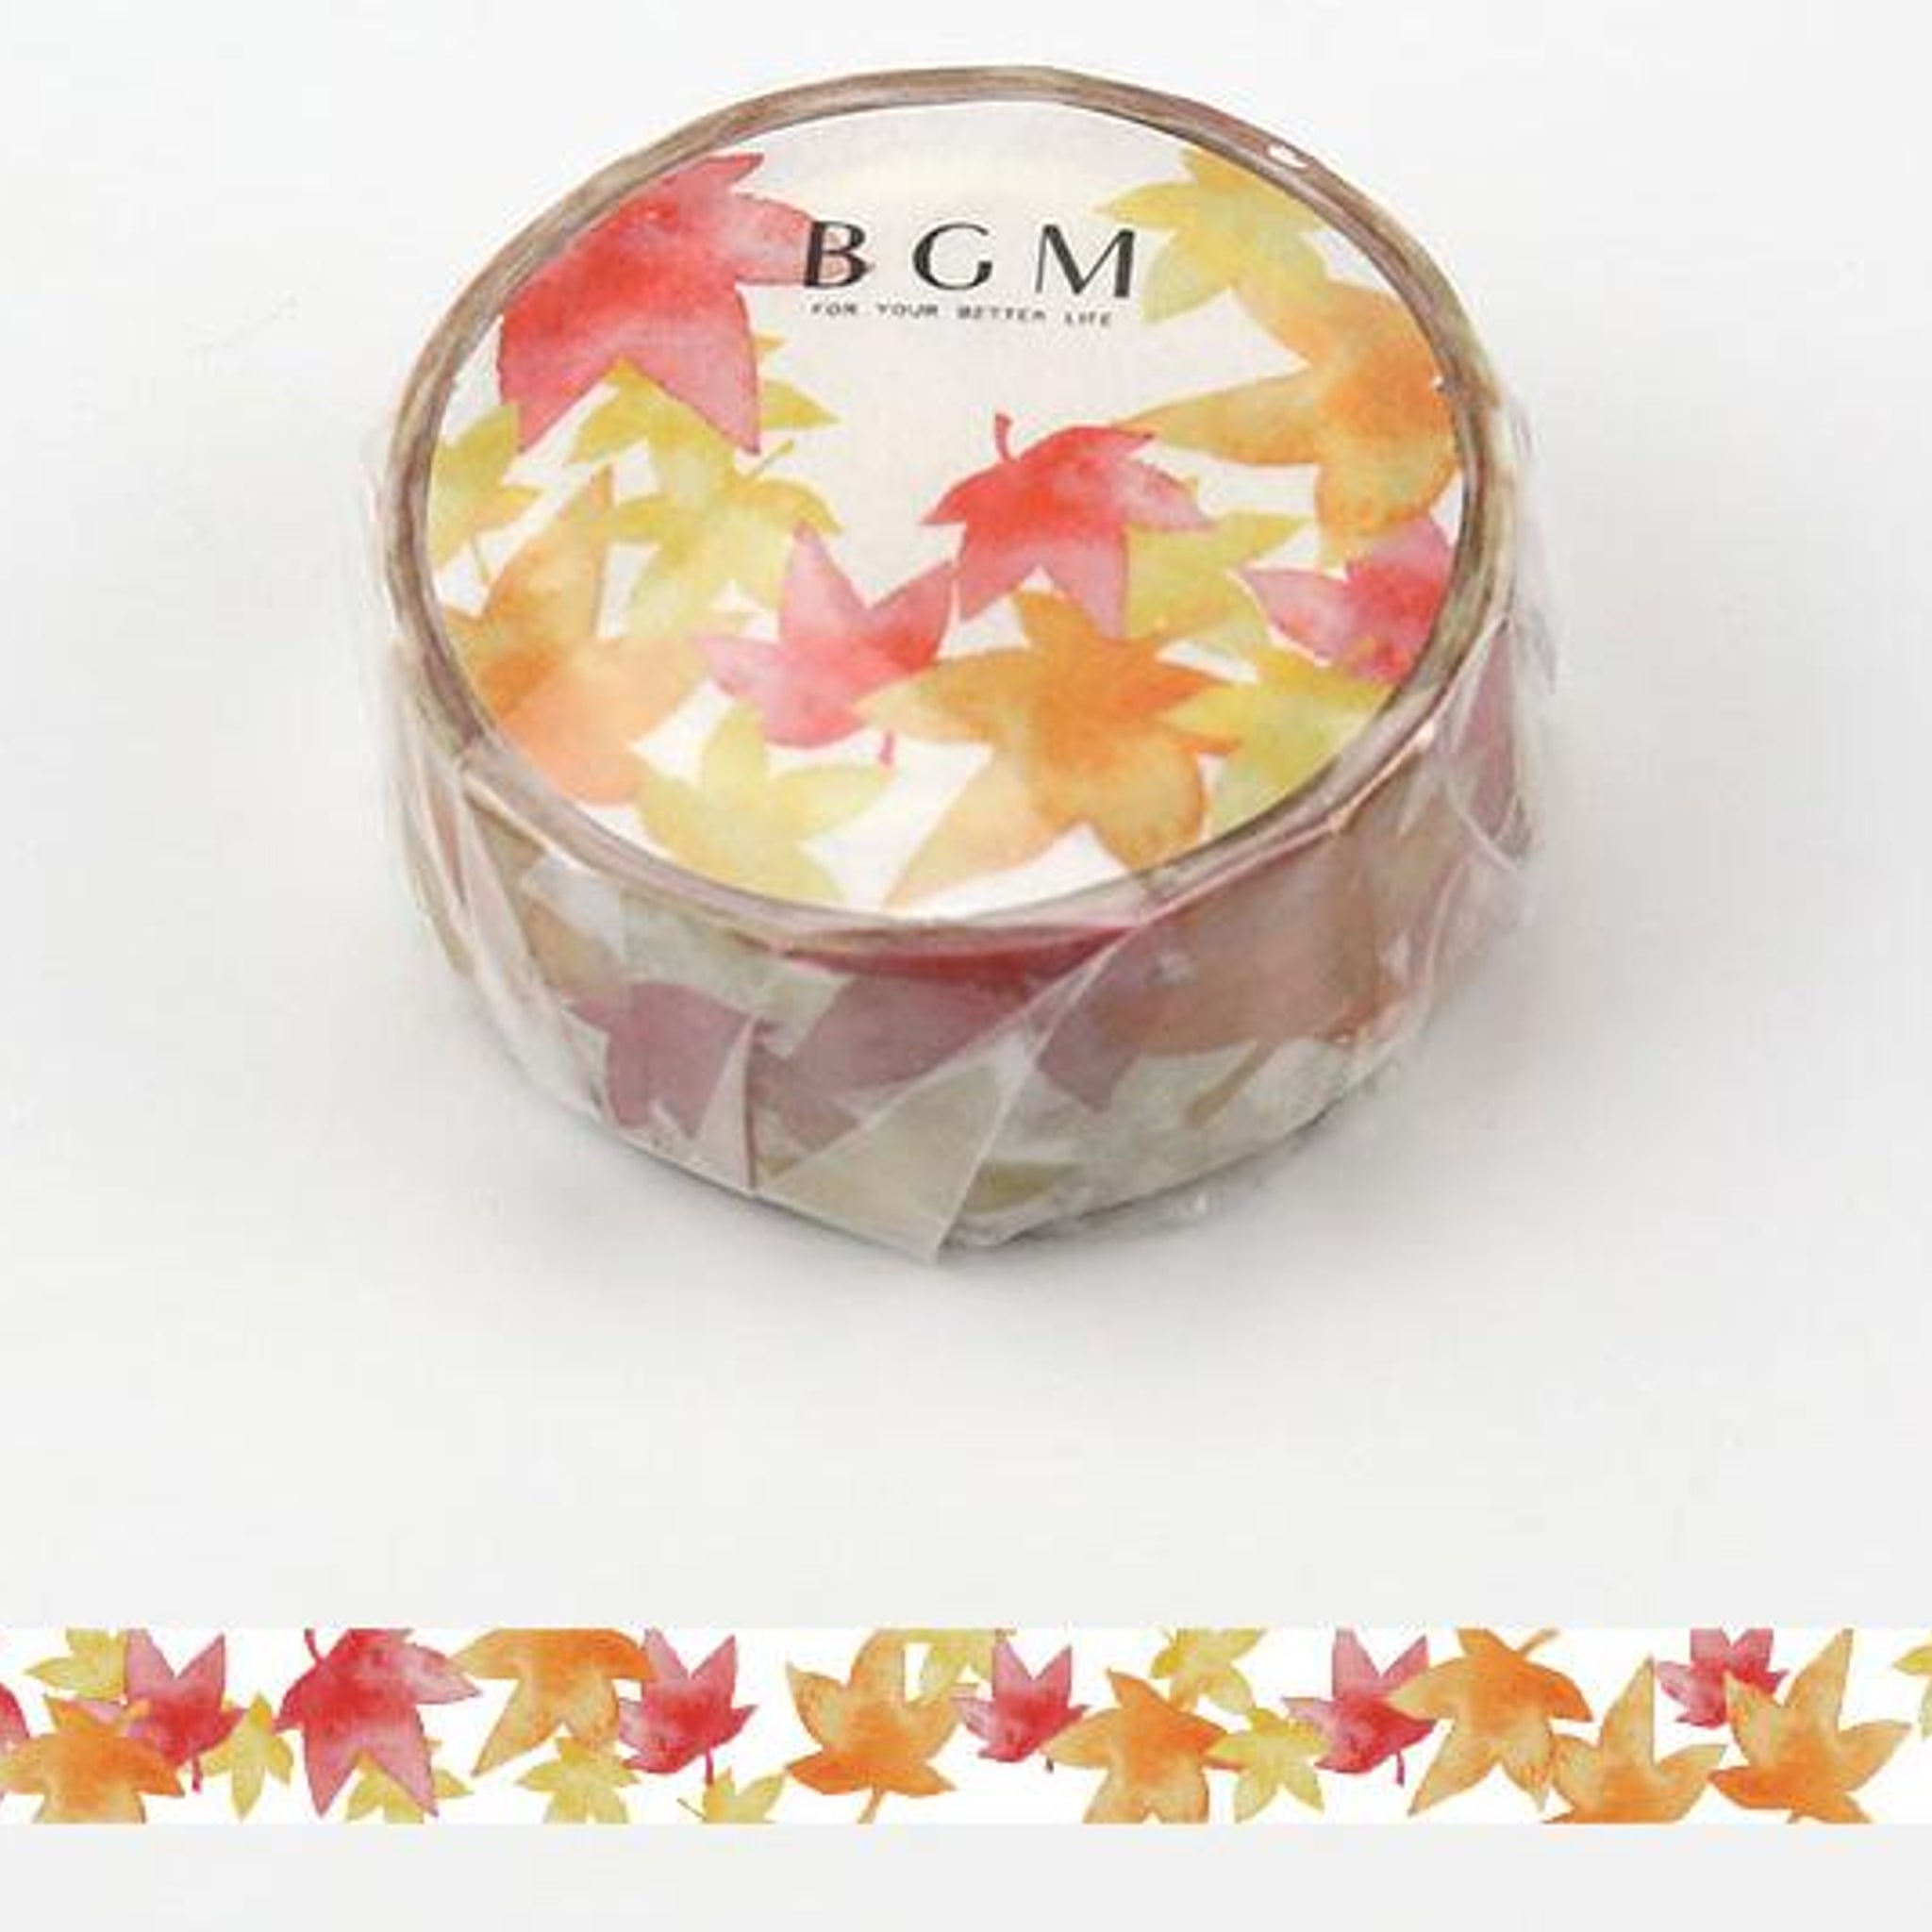 BGM Autumn Leaves Washi Tape